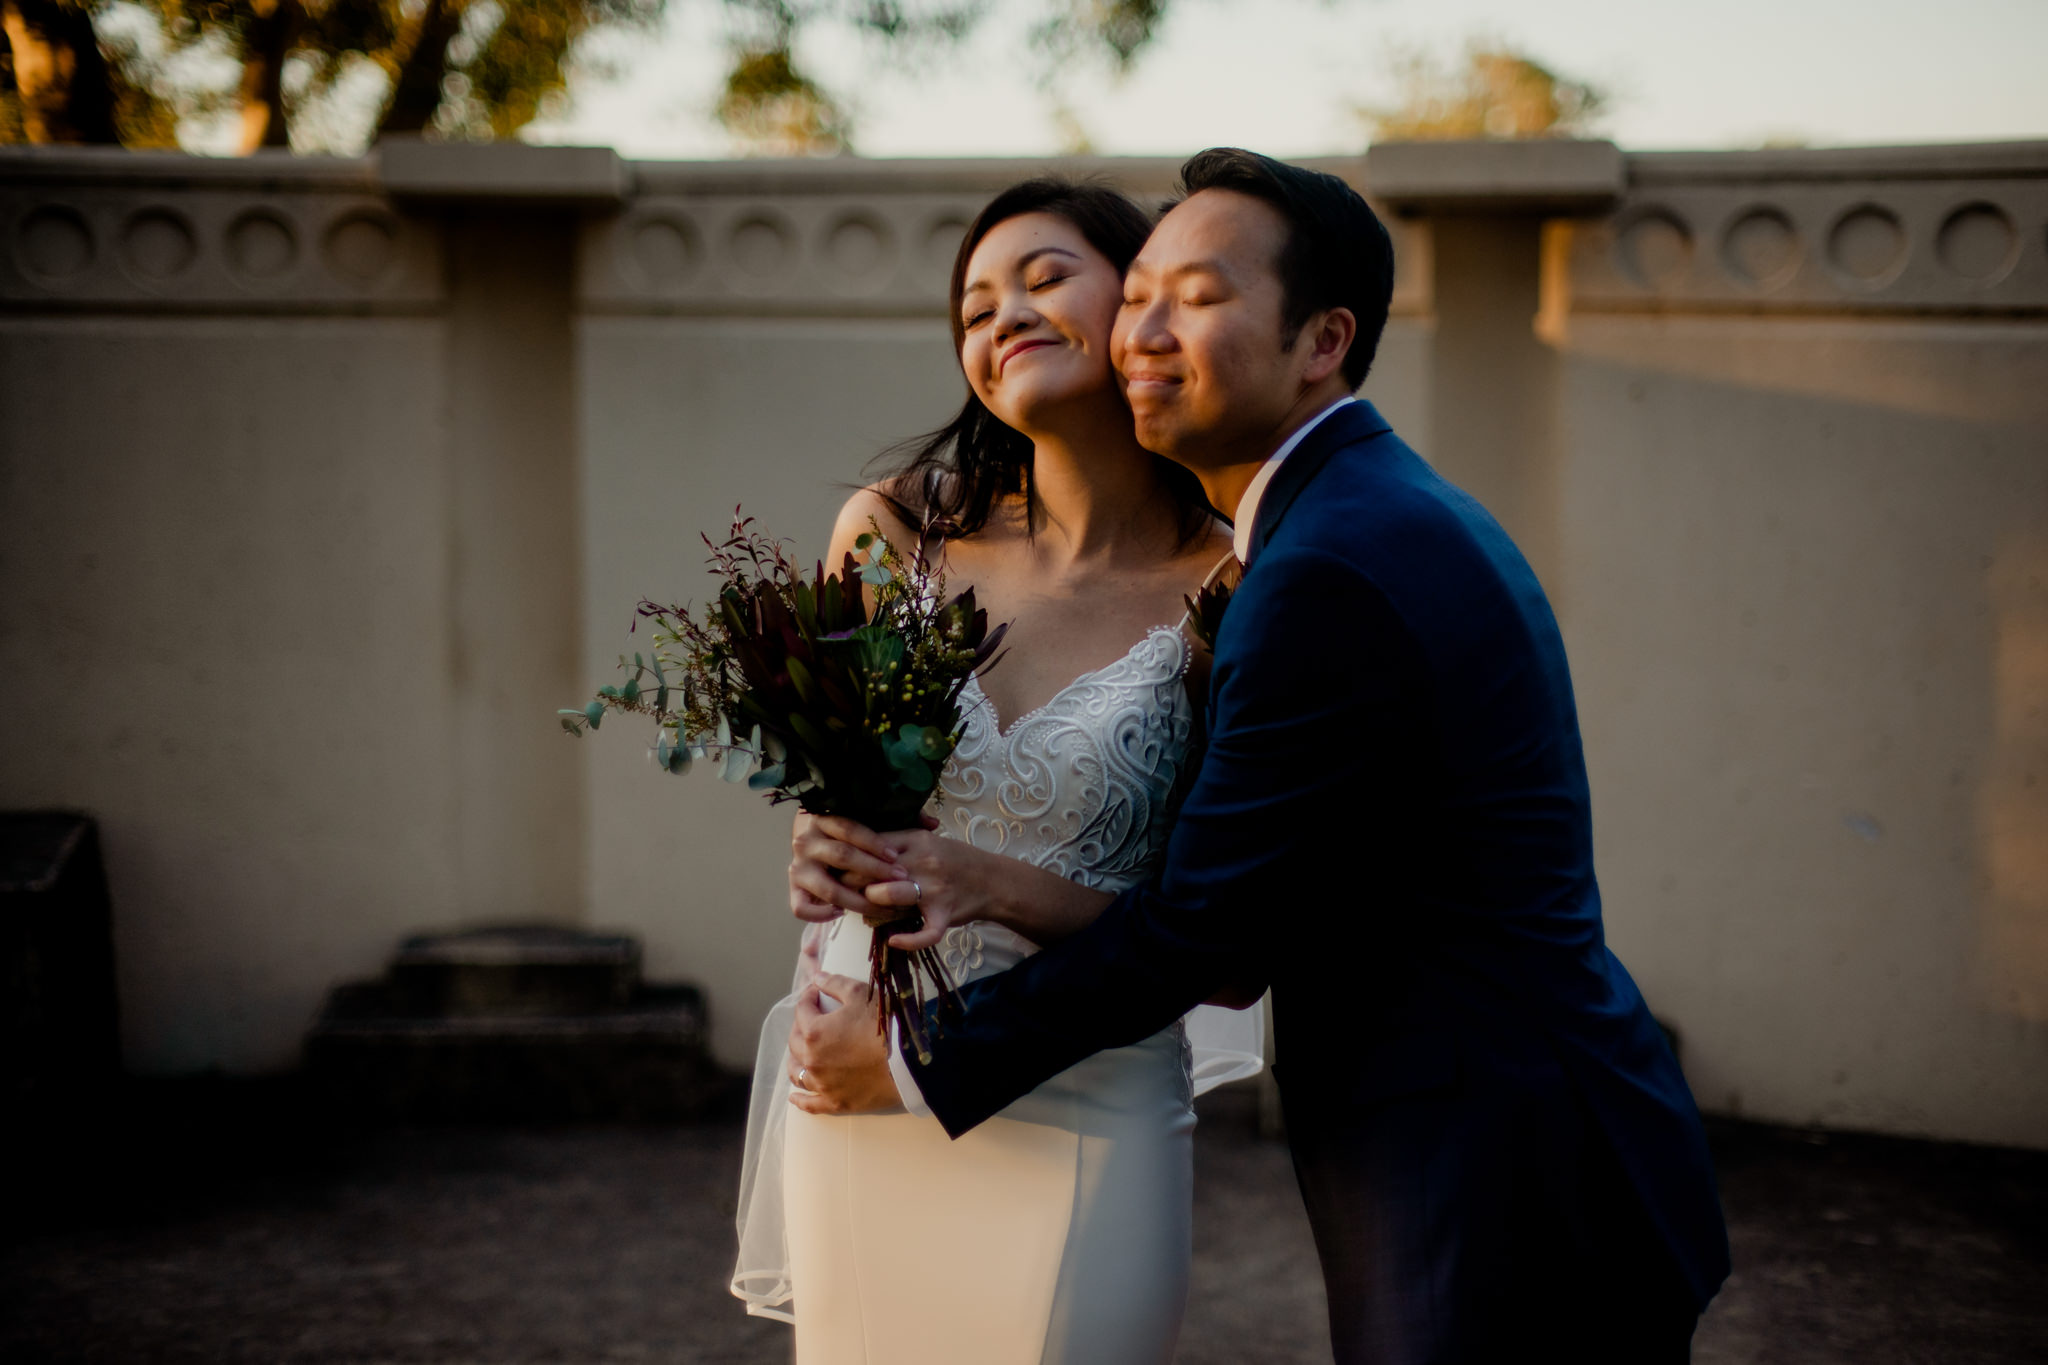 A bride and groom smile and hug in a ray of afternoon sun